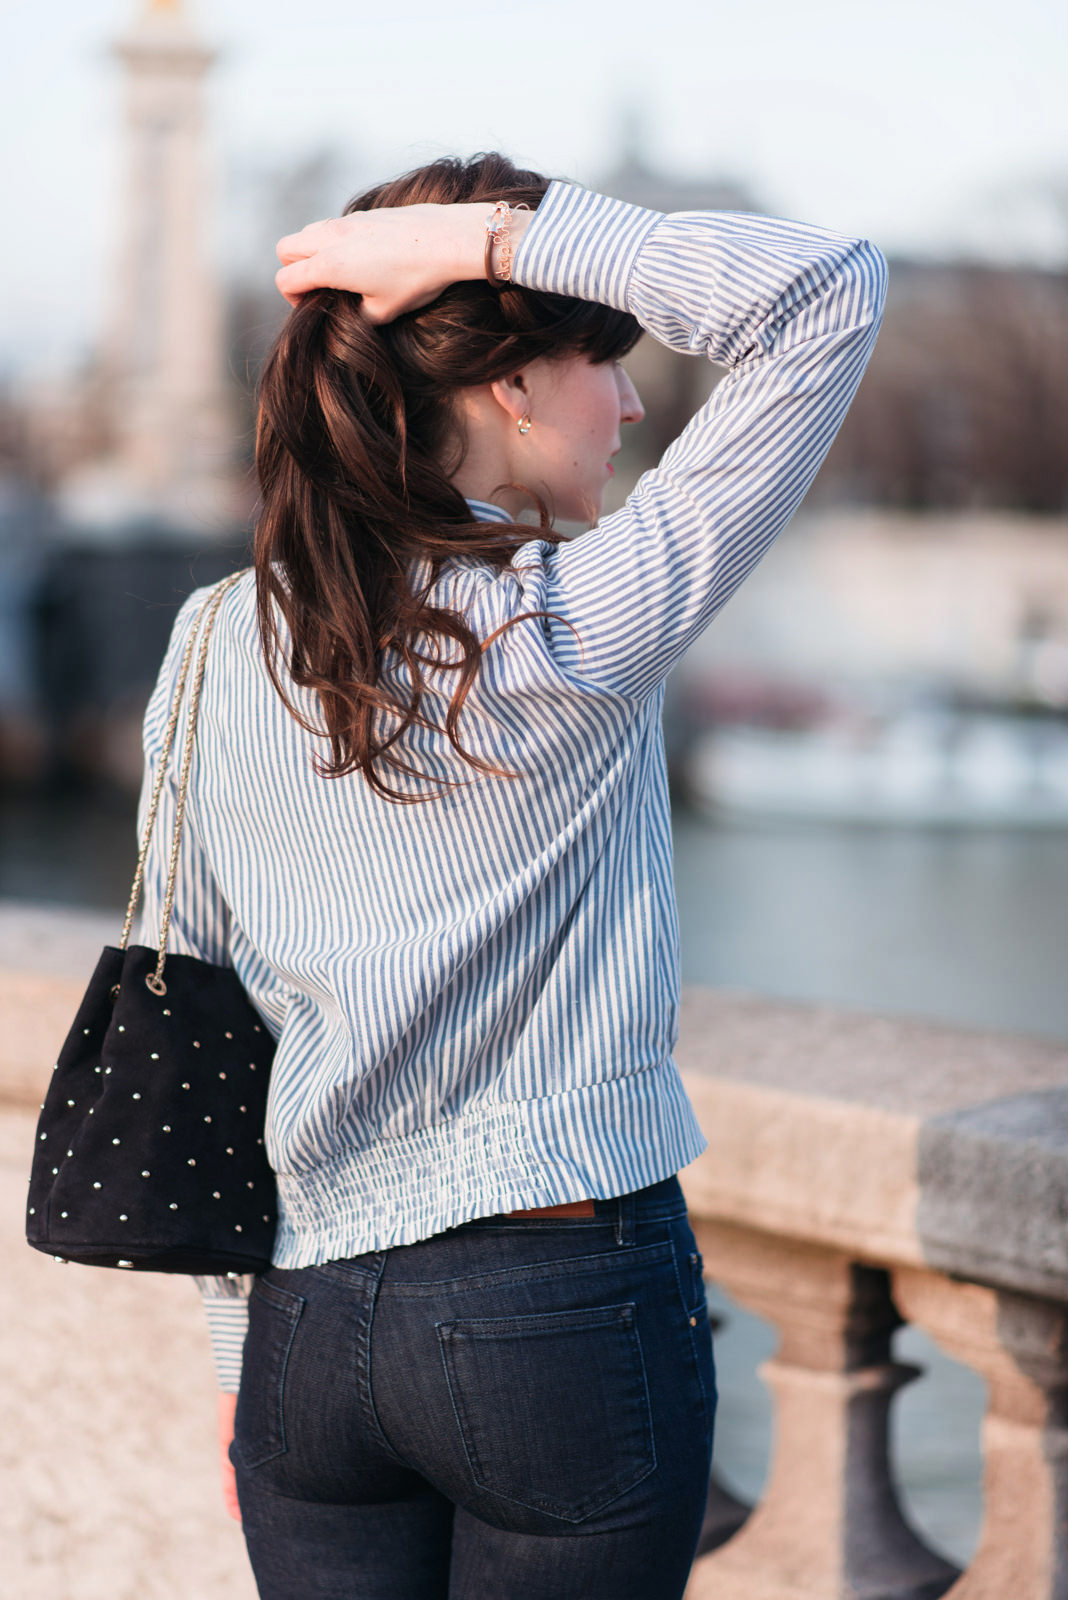 Blog-Mode-And-The-City-Looks-En-Sezane-Sur-Le-Pont-Alexandre-III-3ok